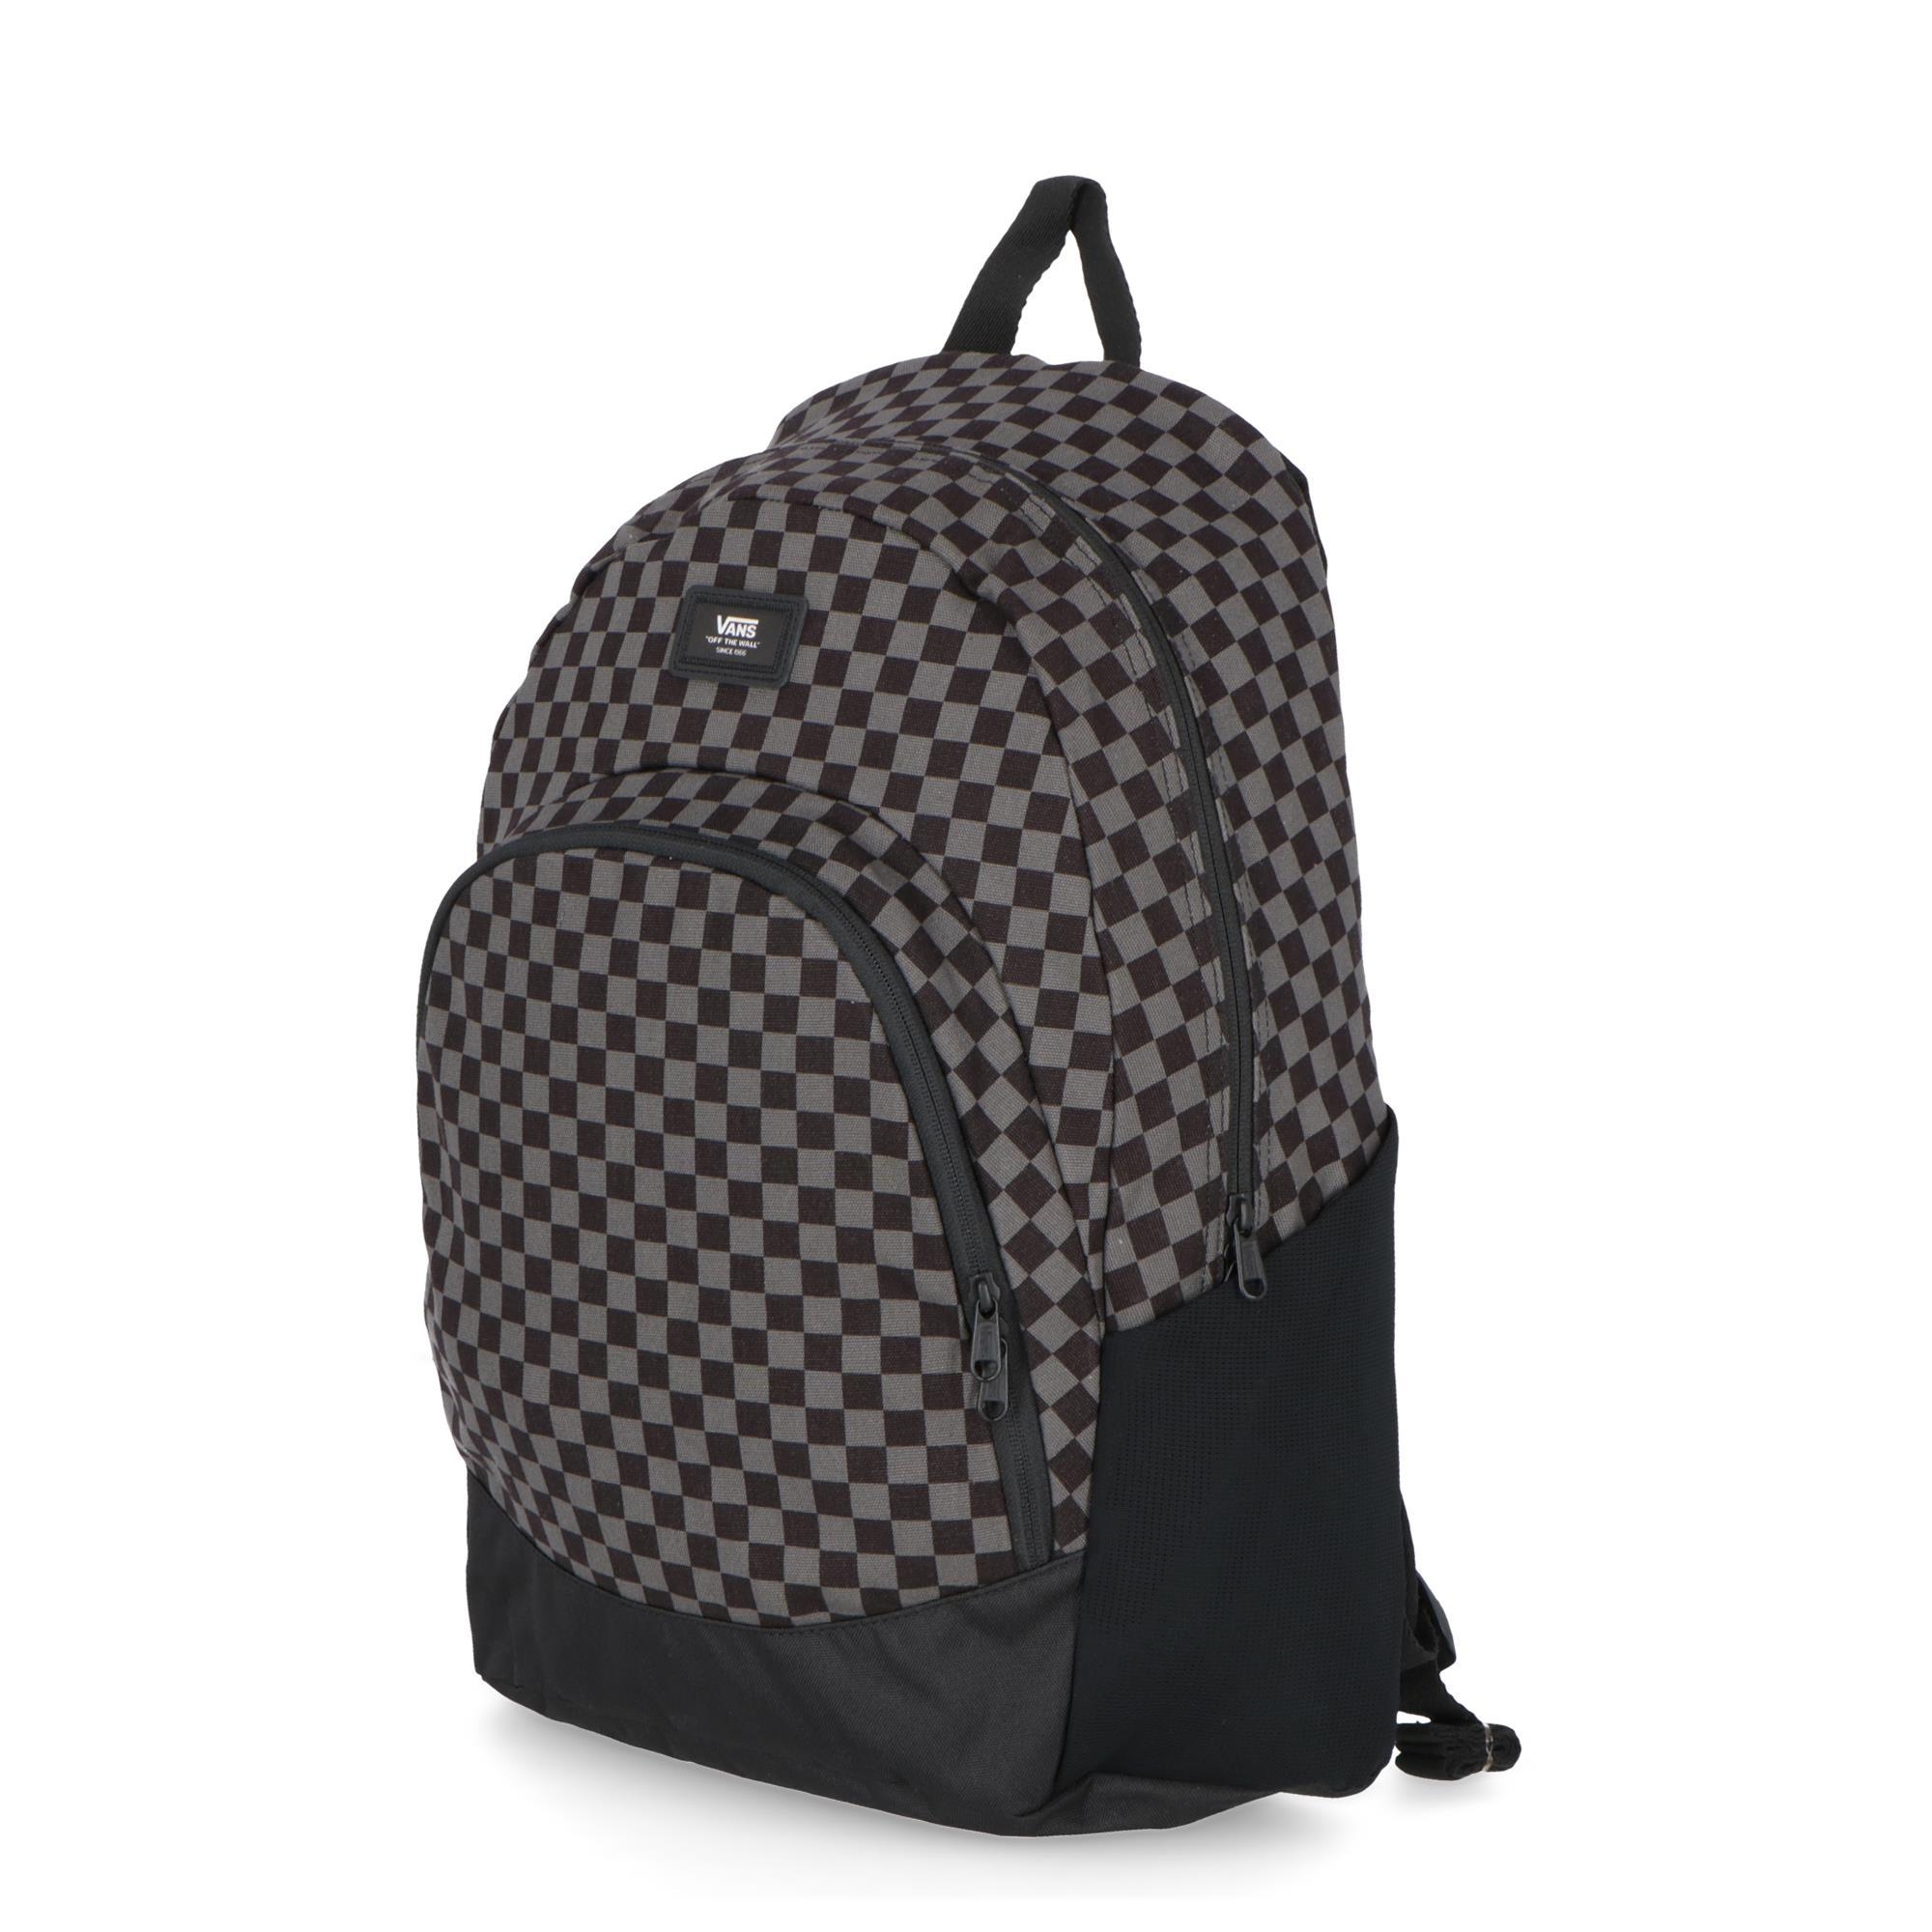 79c7836588 Vans Van Doren Original Backpack Black Charco | Treesse